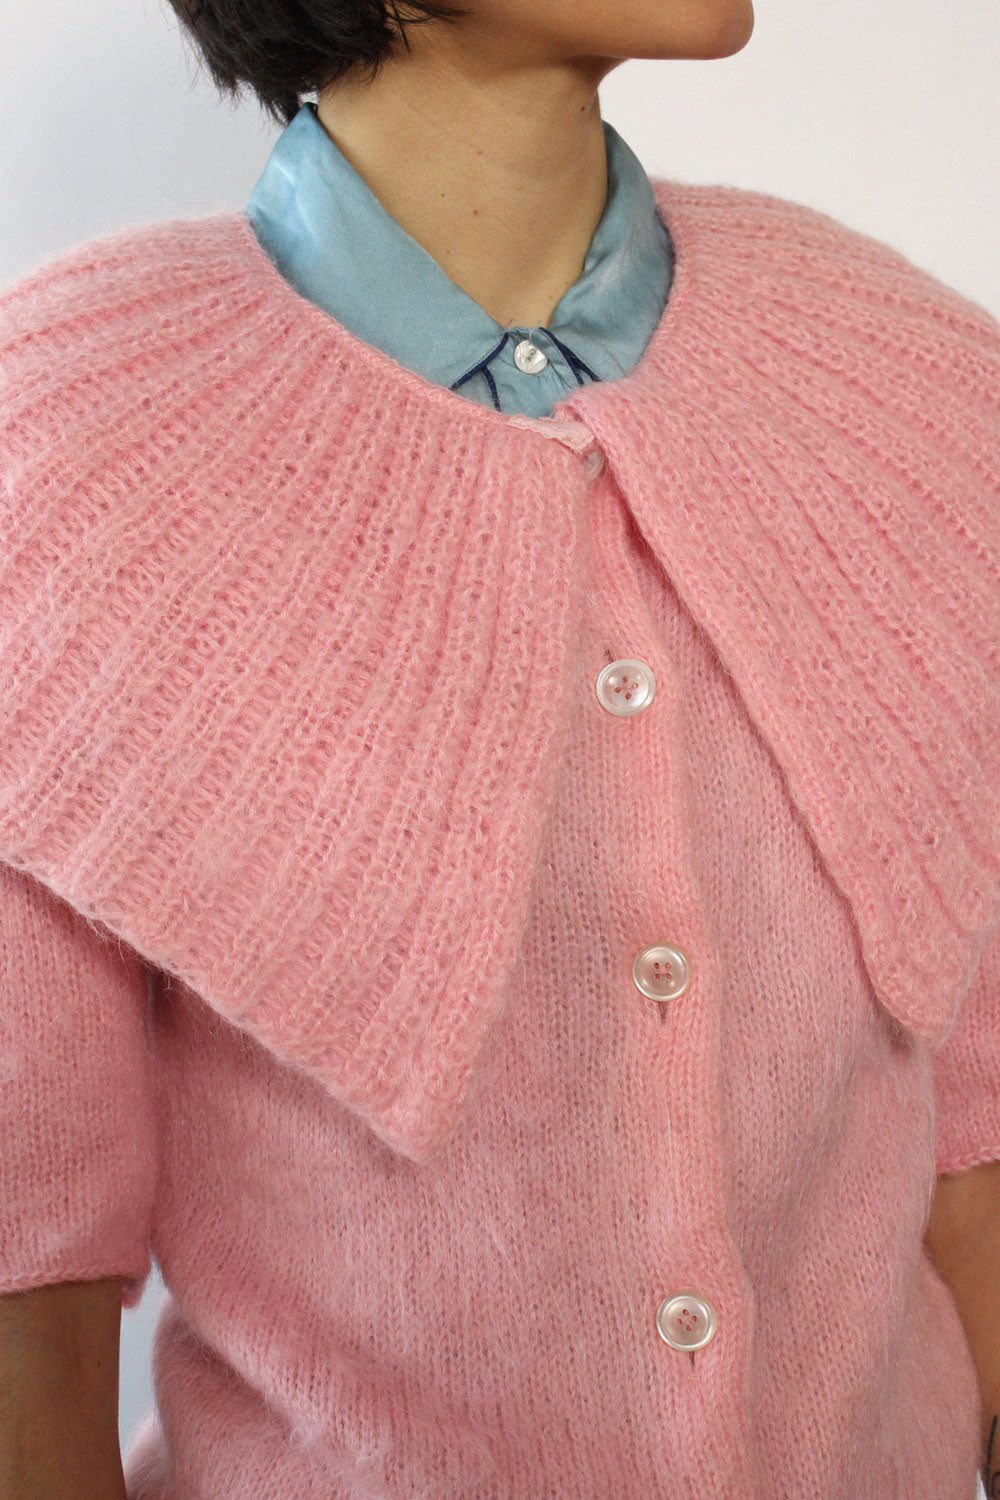 Jane Irwill Pink Collared Cardigan XS/S